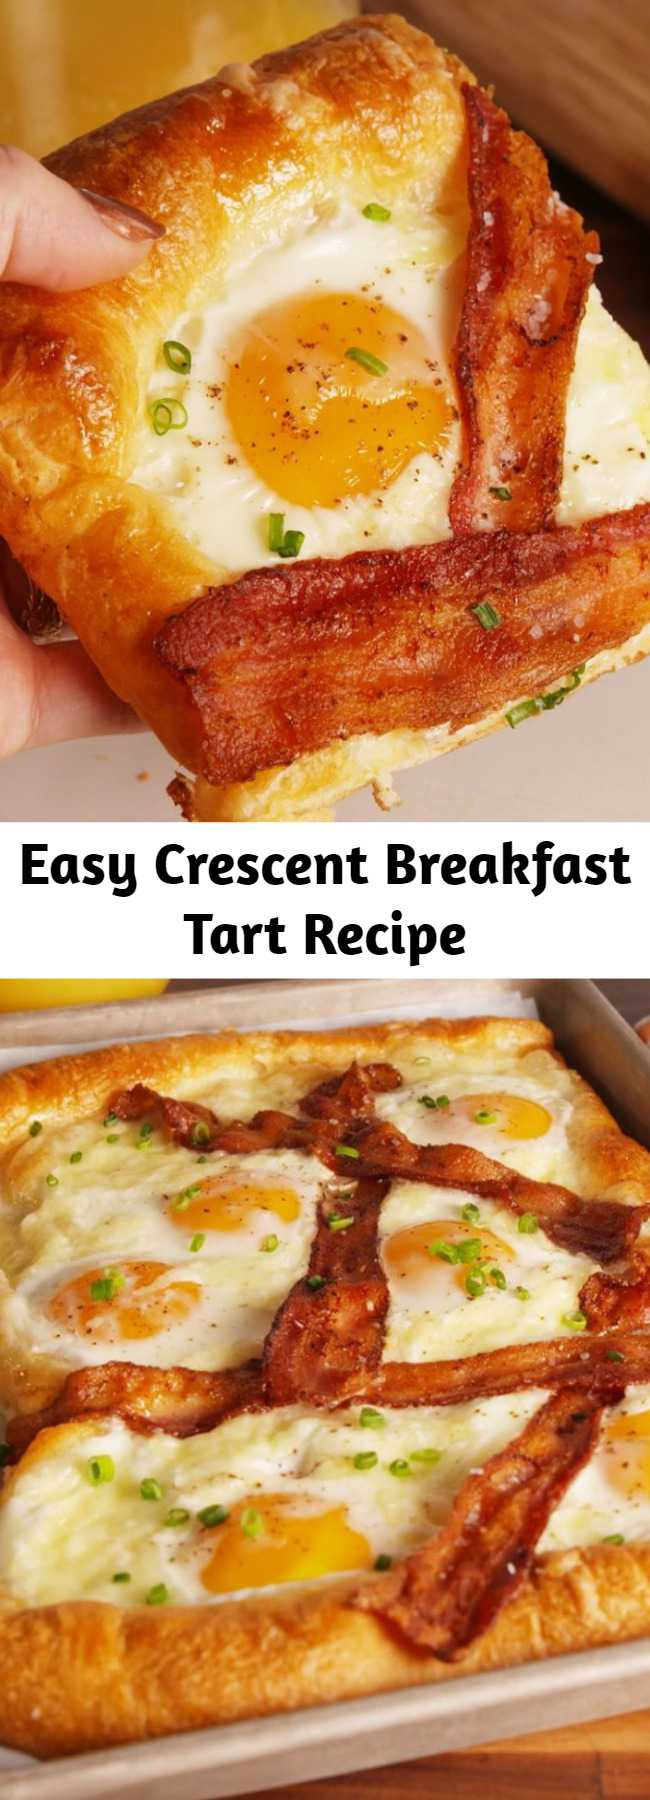 Easy Crescent Breakfast Tart Recipe - This Crescent Breakfast Tart is the EASIEST way to make breakfast for a crowd. As pretty as it is delicious!